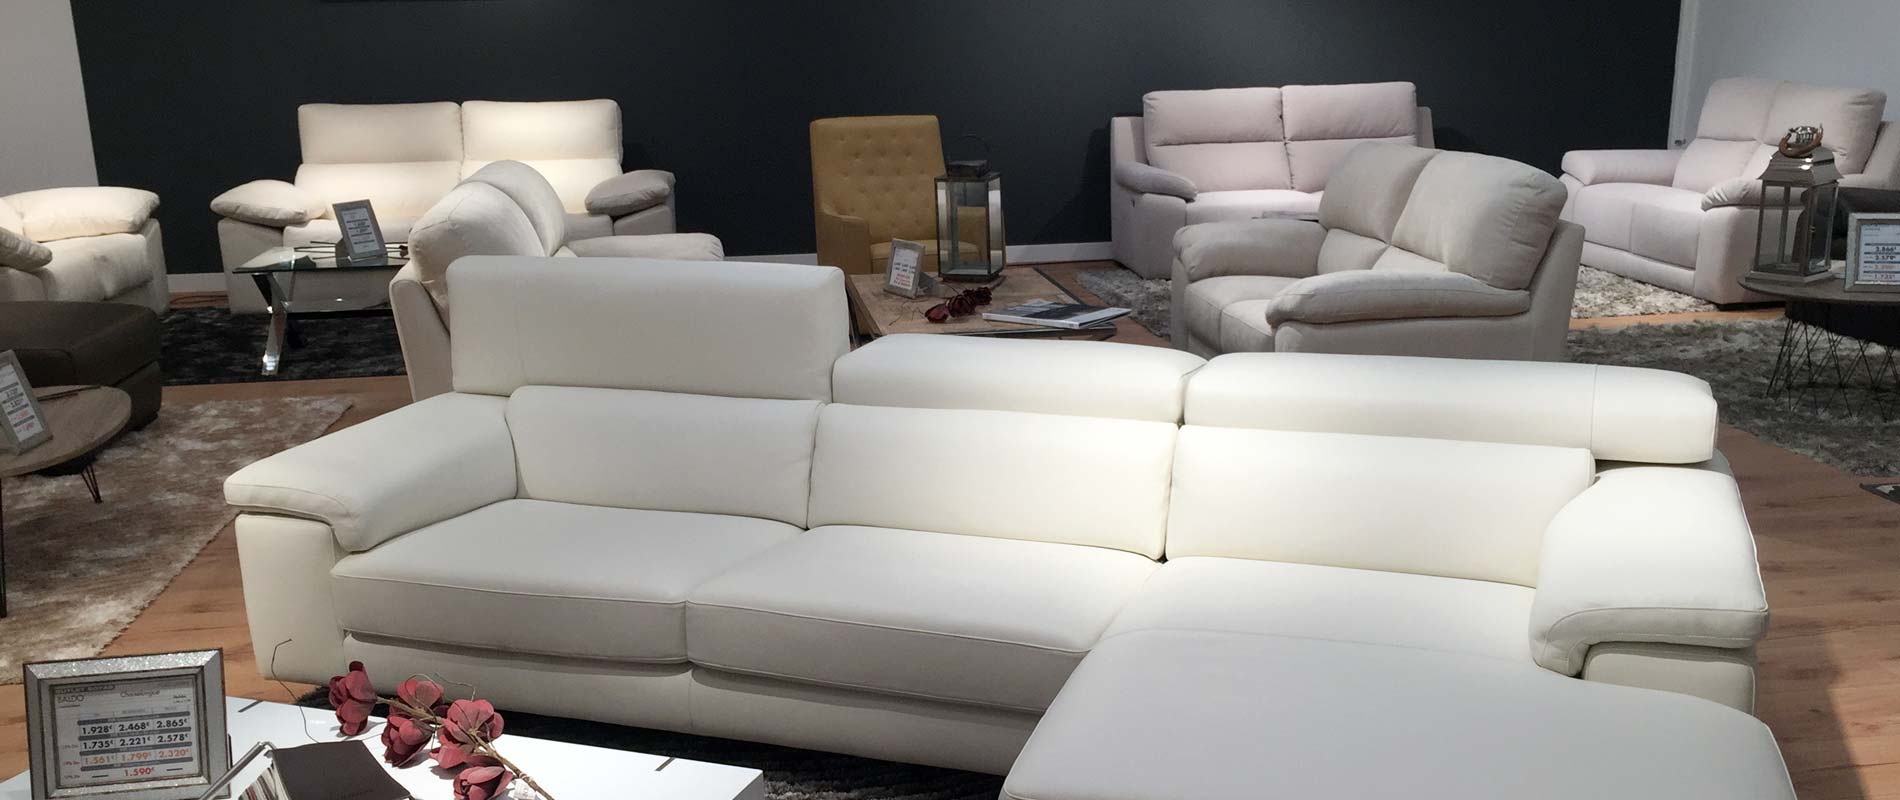 Sofas Europolis Las Rozas Simple Biubo Products With Sofas  # Muebles Goyal Europolis